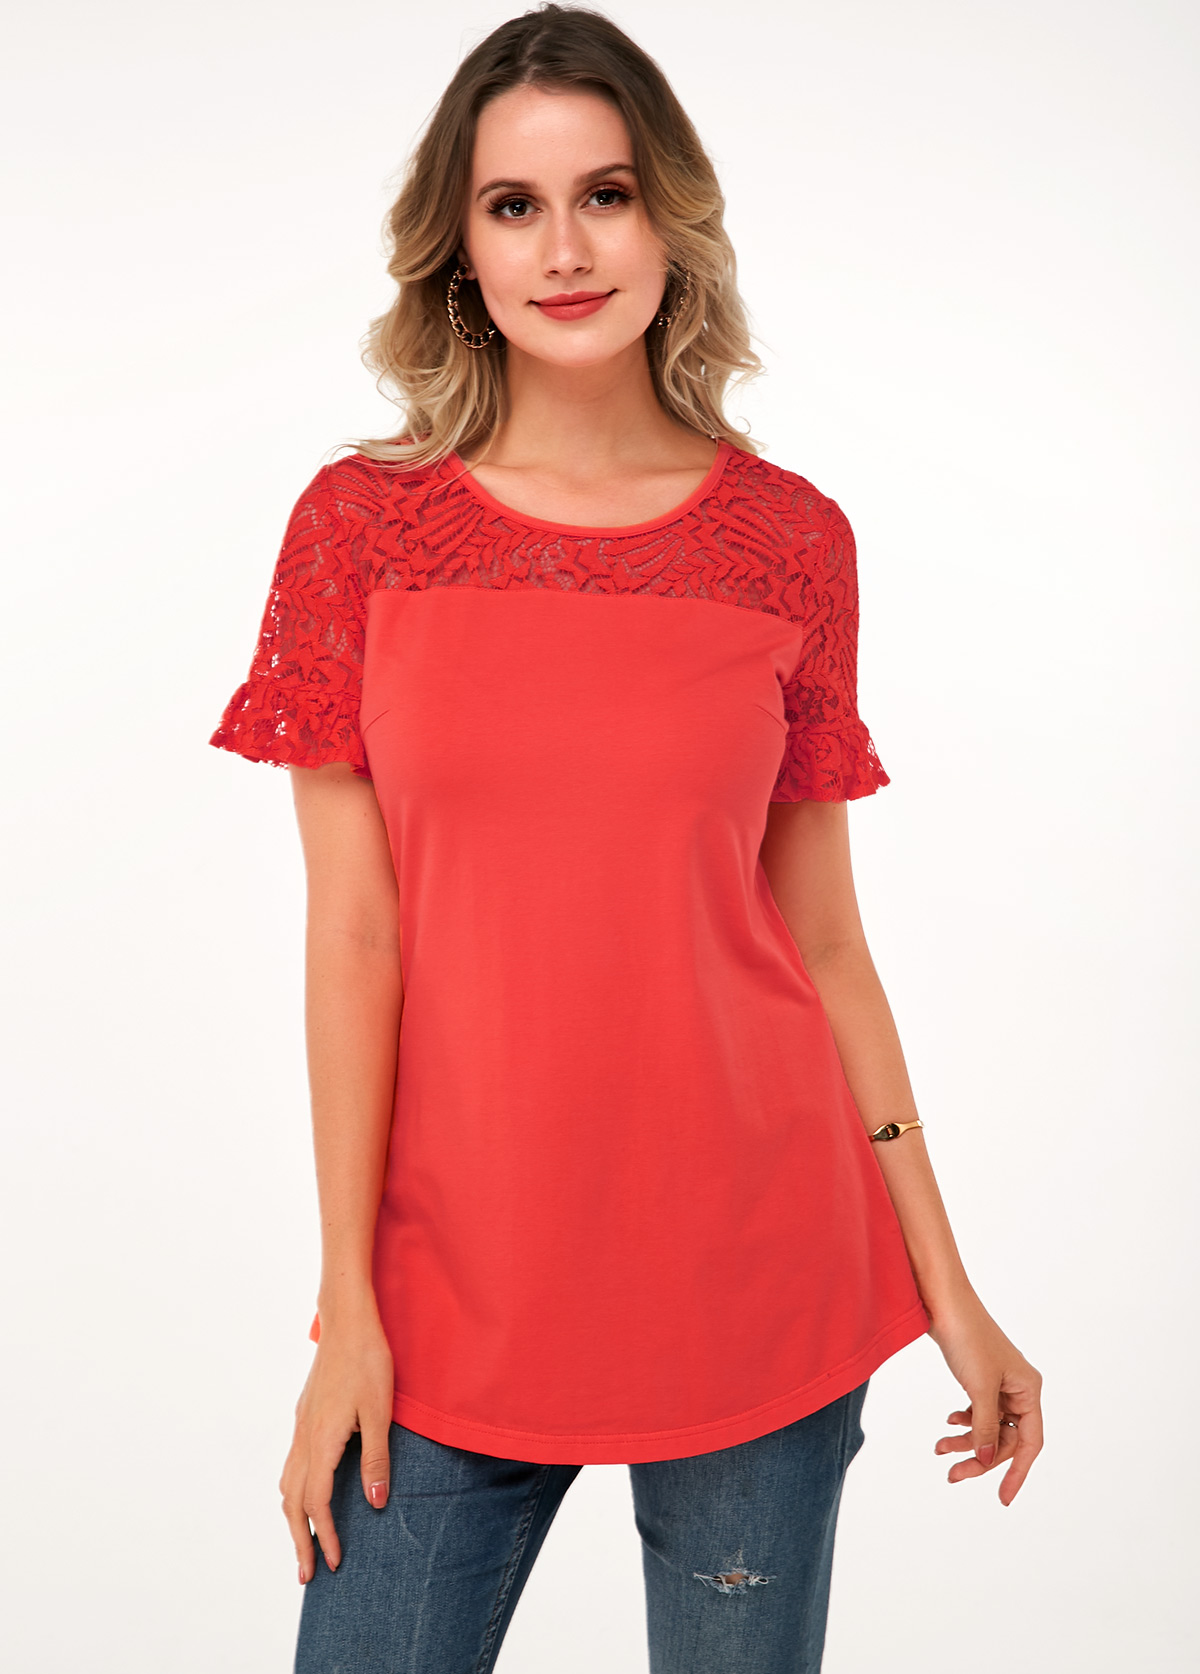 Lace Panel Red Round Neck Short Sleeve Soft T Shirt